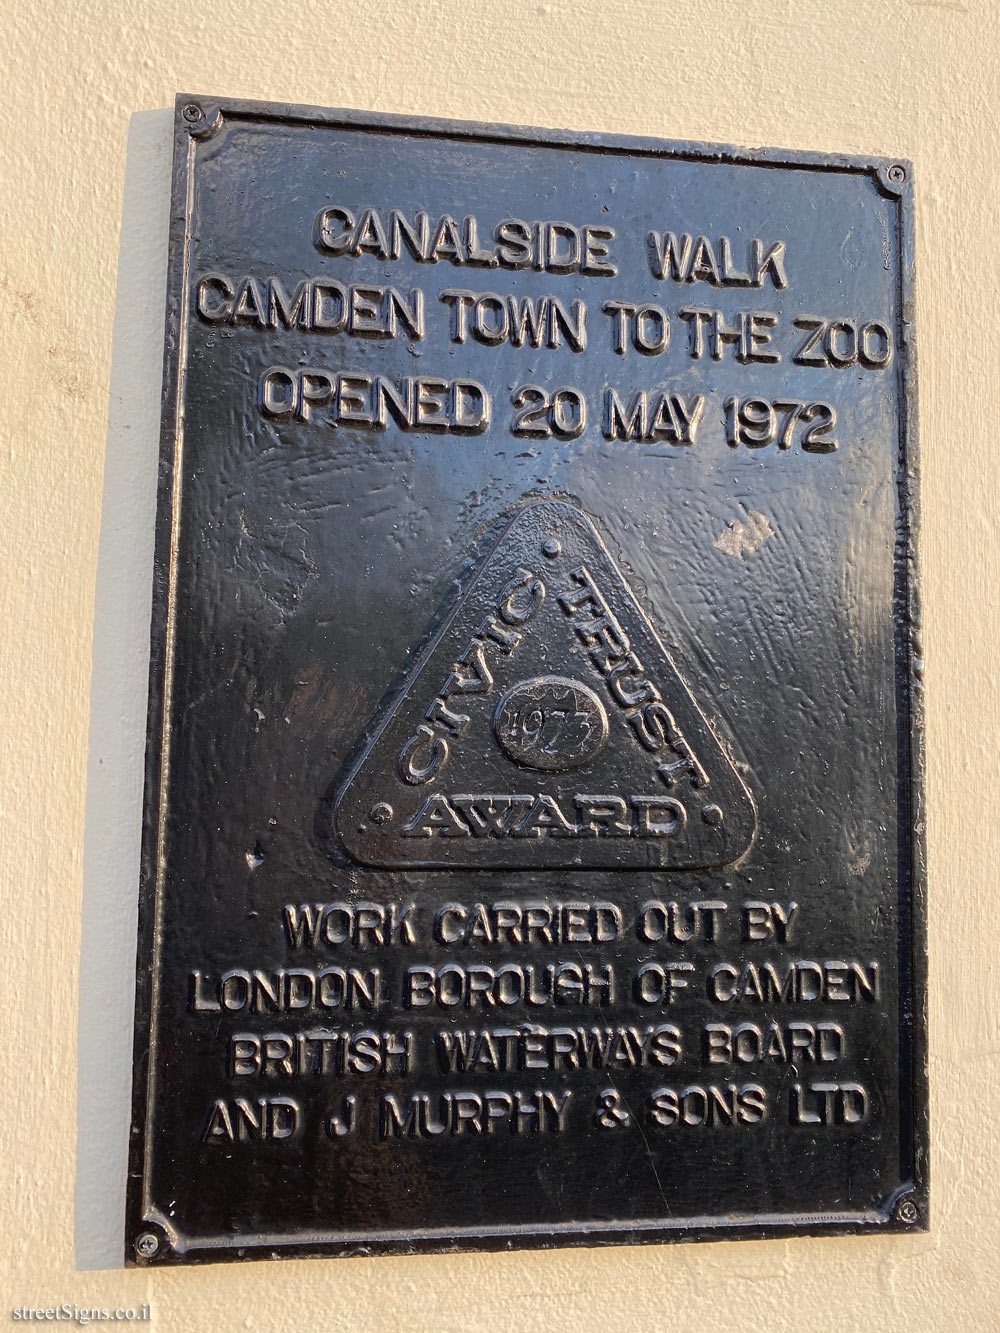 London - Camden - Walking route along the canal